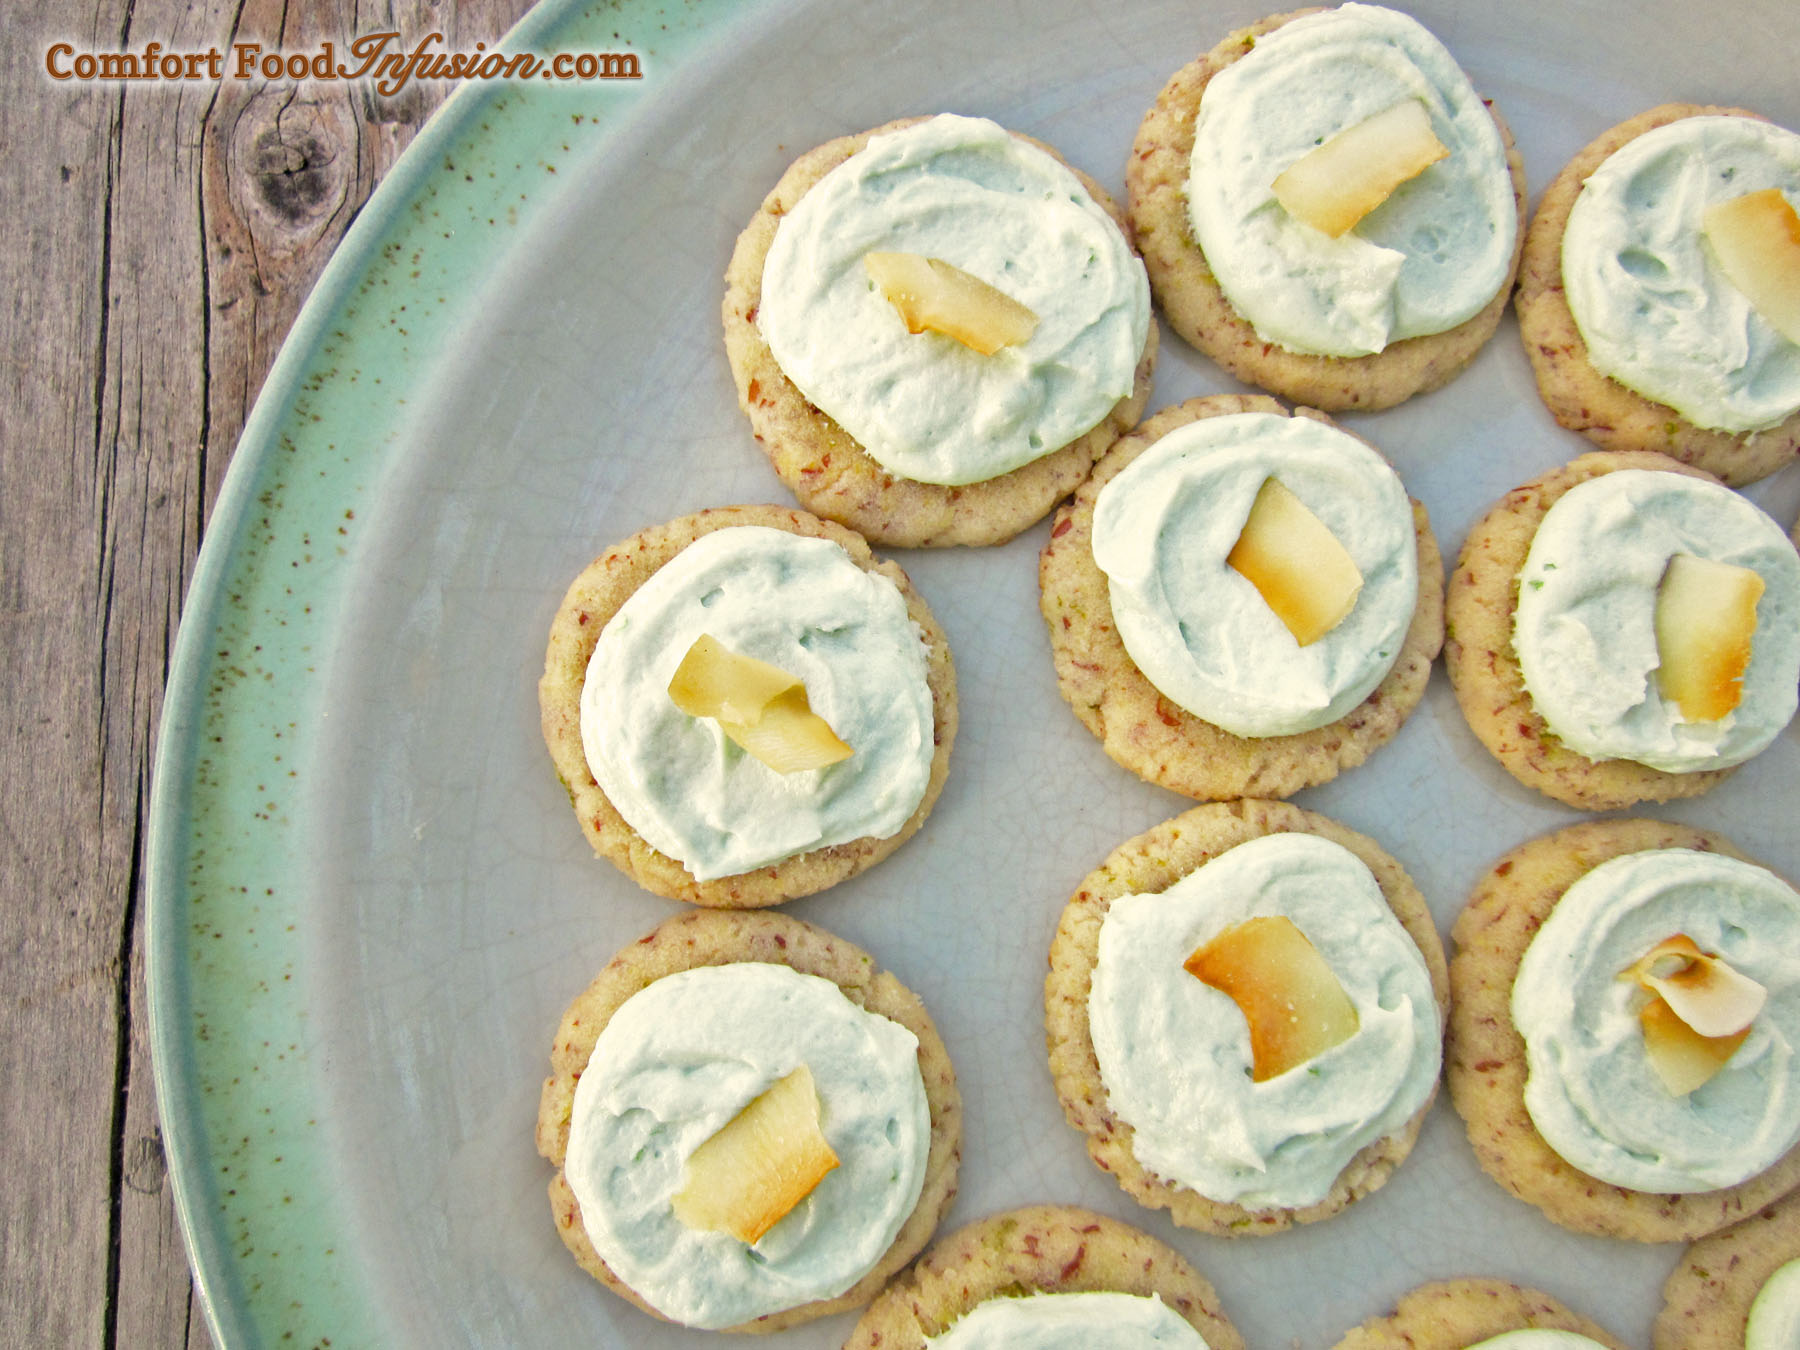 Coconut Lime Cookies. Made with coconut flour. Gluten free and vegan!